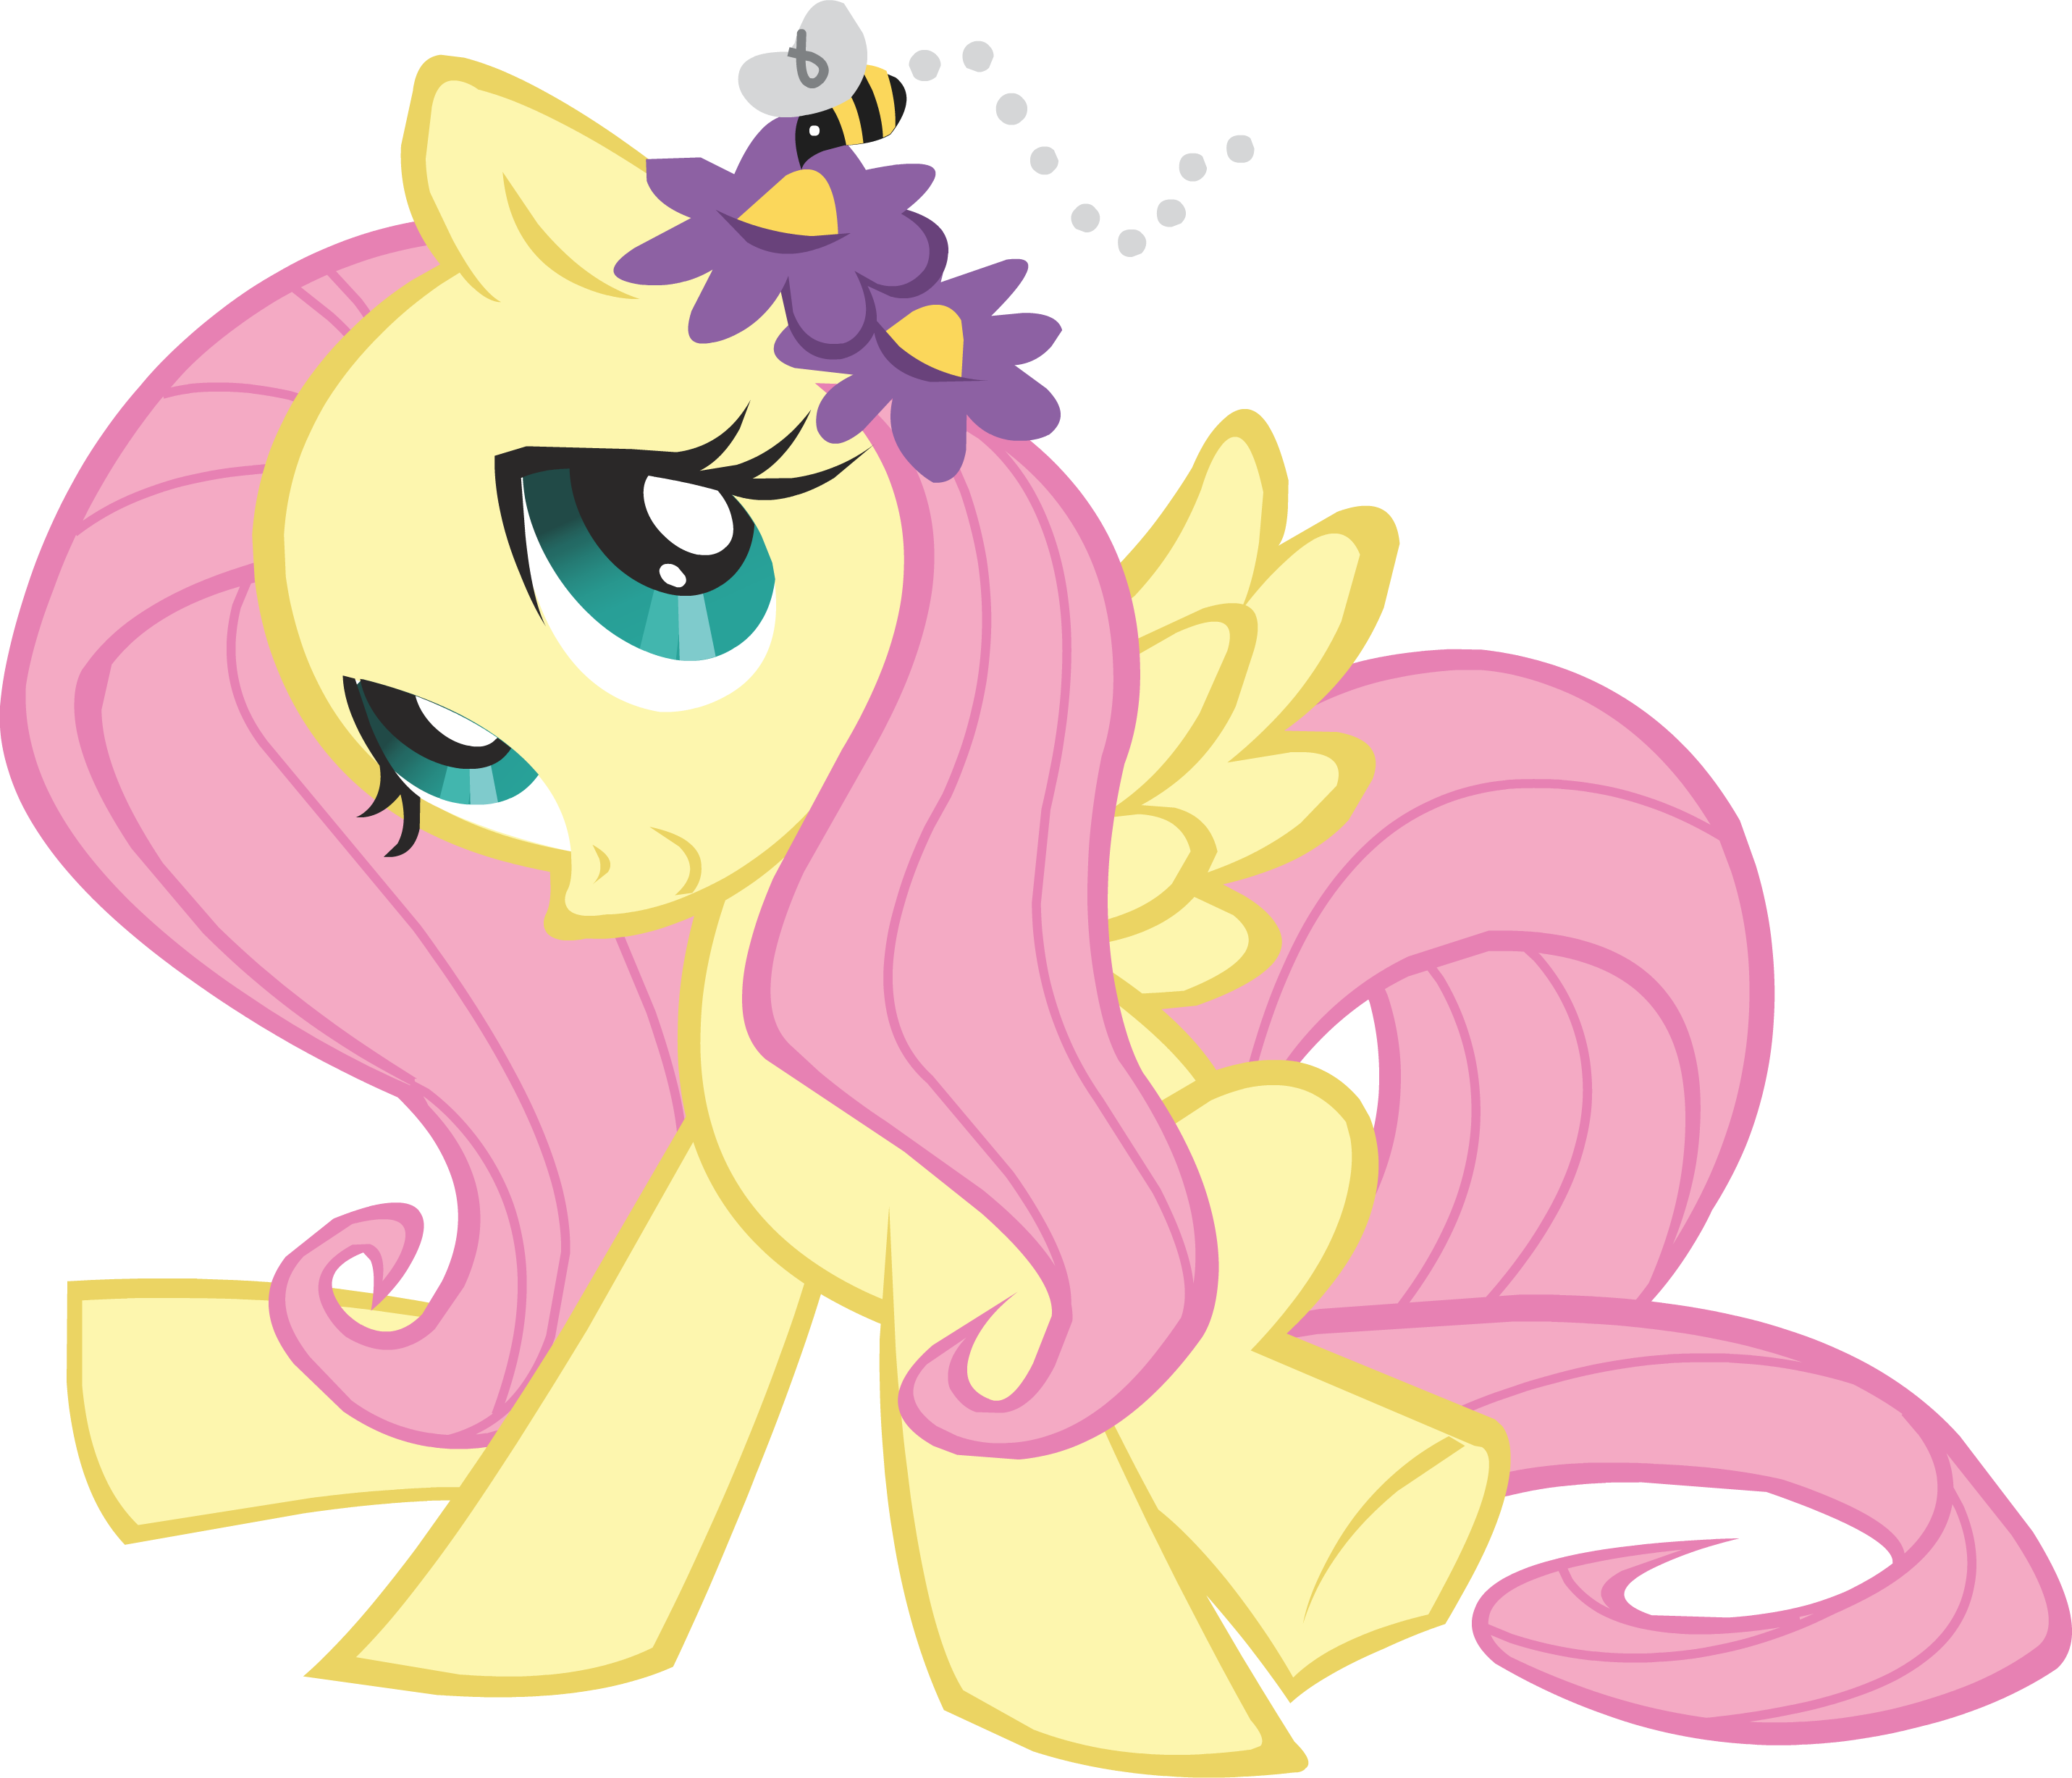 my little pony friendship is magic - Google Search - My Little Pony PNG